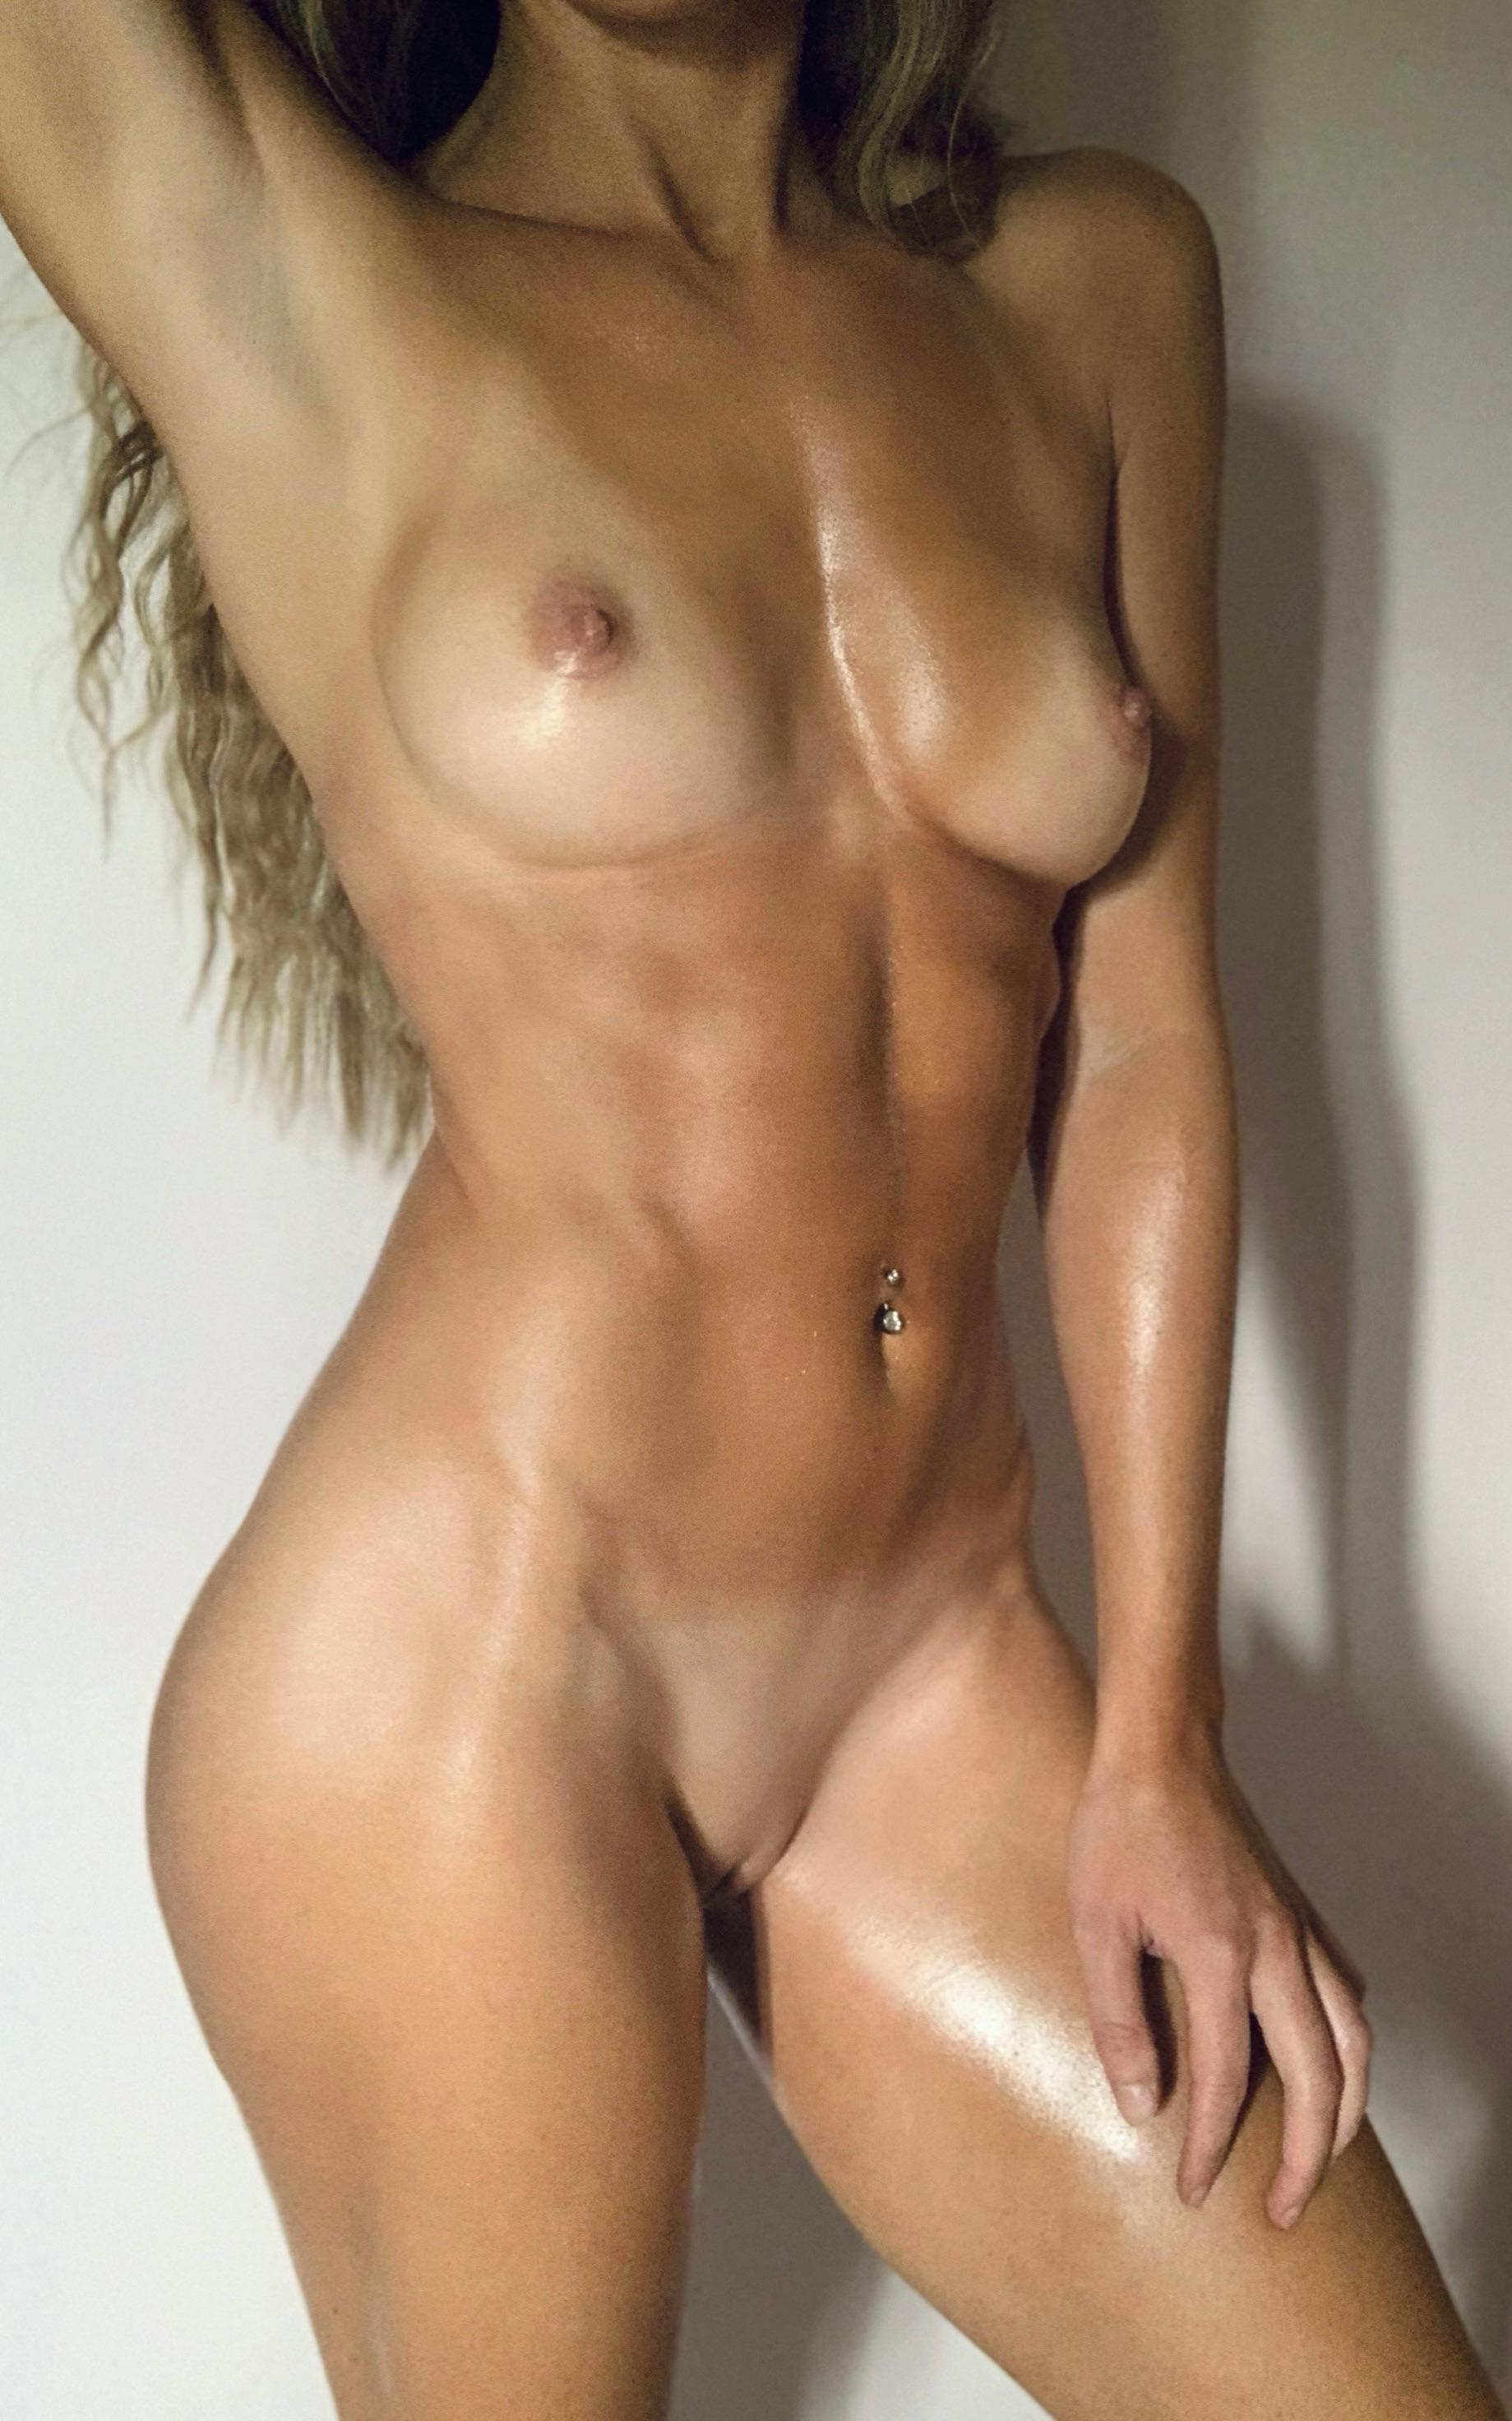 A Little Oily, Hope You Don't Mind